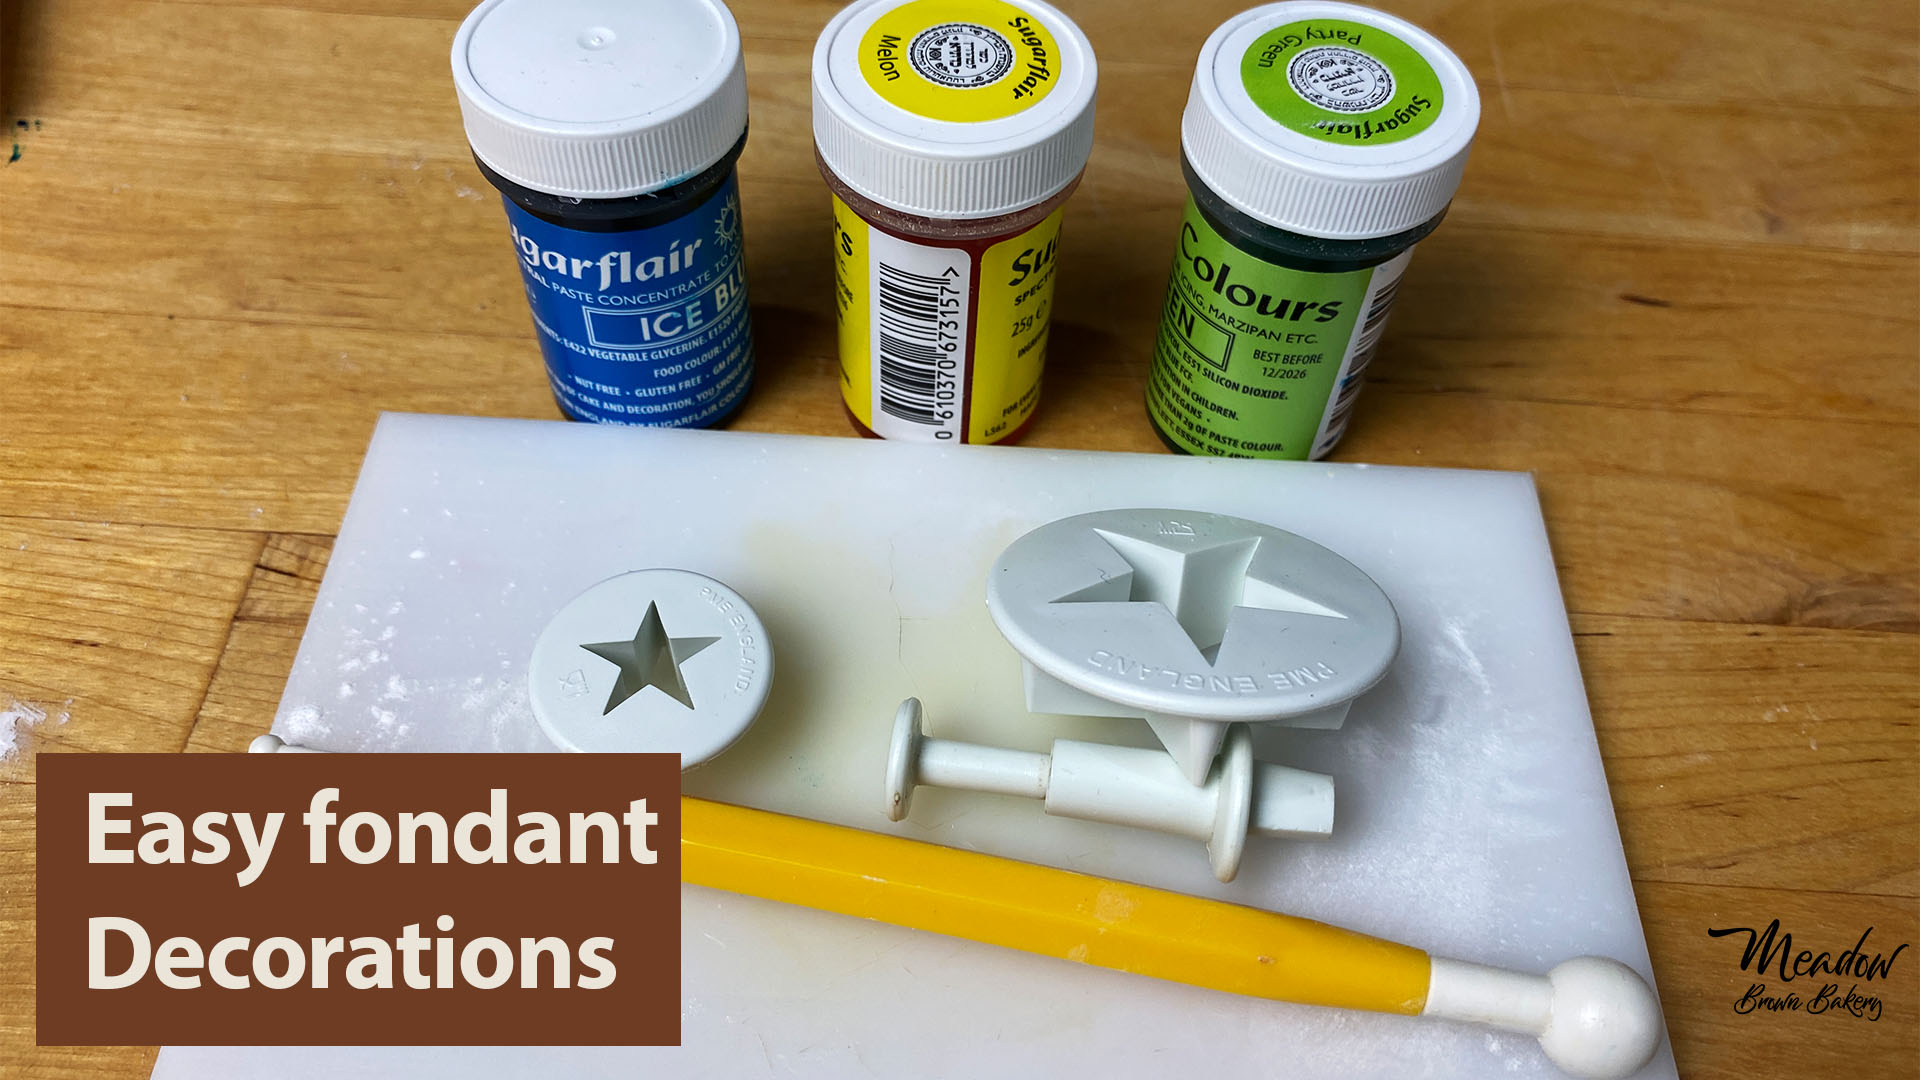 How to make fondant decorations for beginners